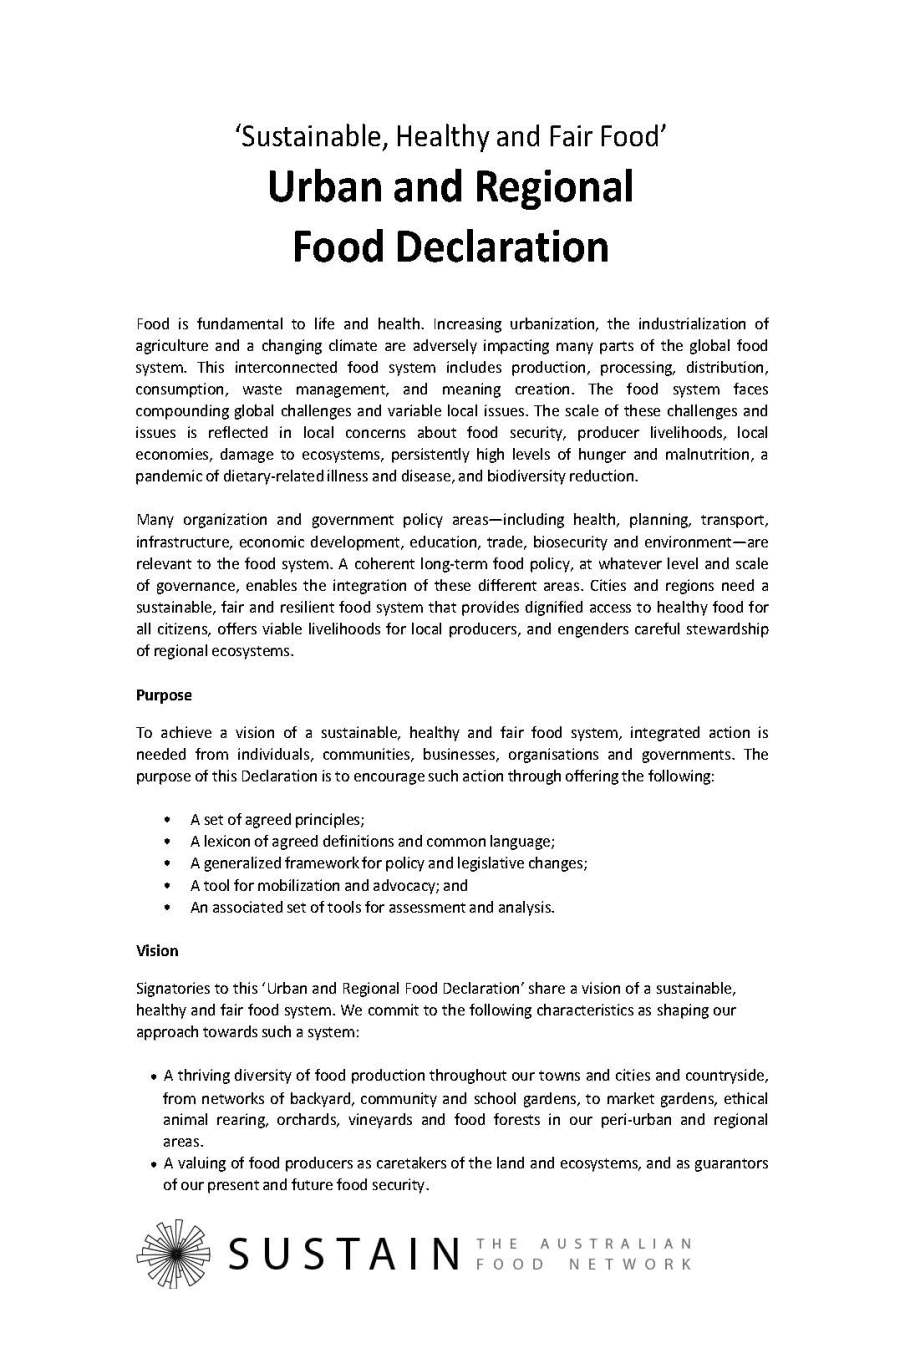 Food-Declaration-with-Signatories-140116_Page_1